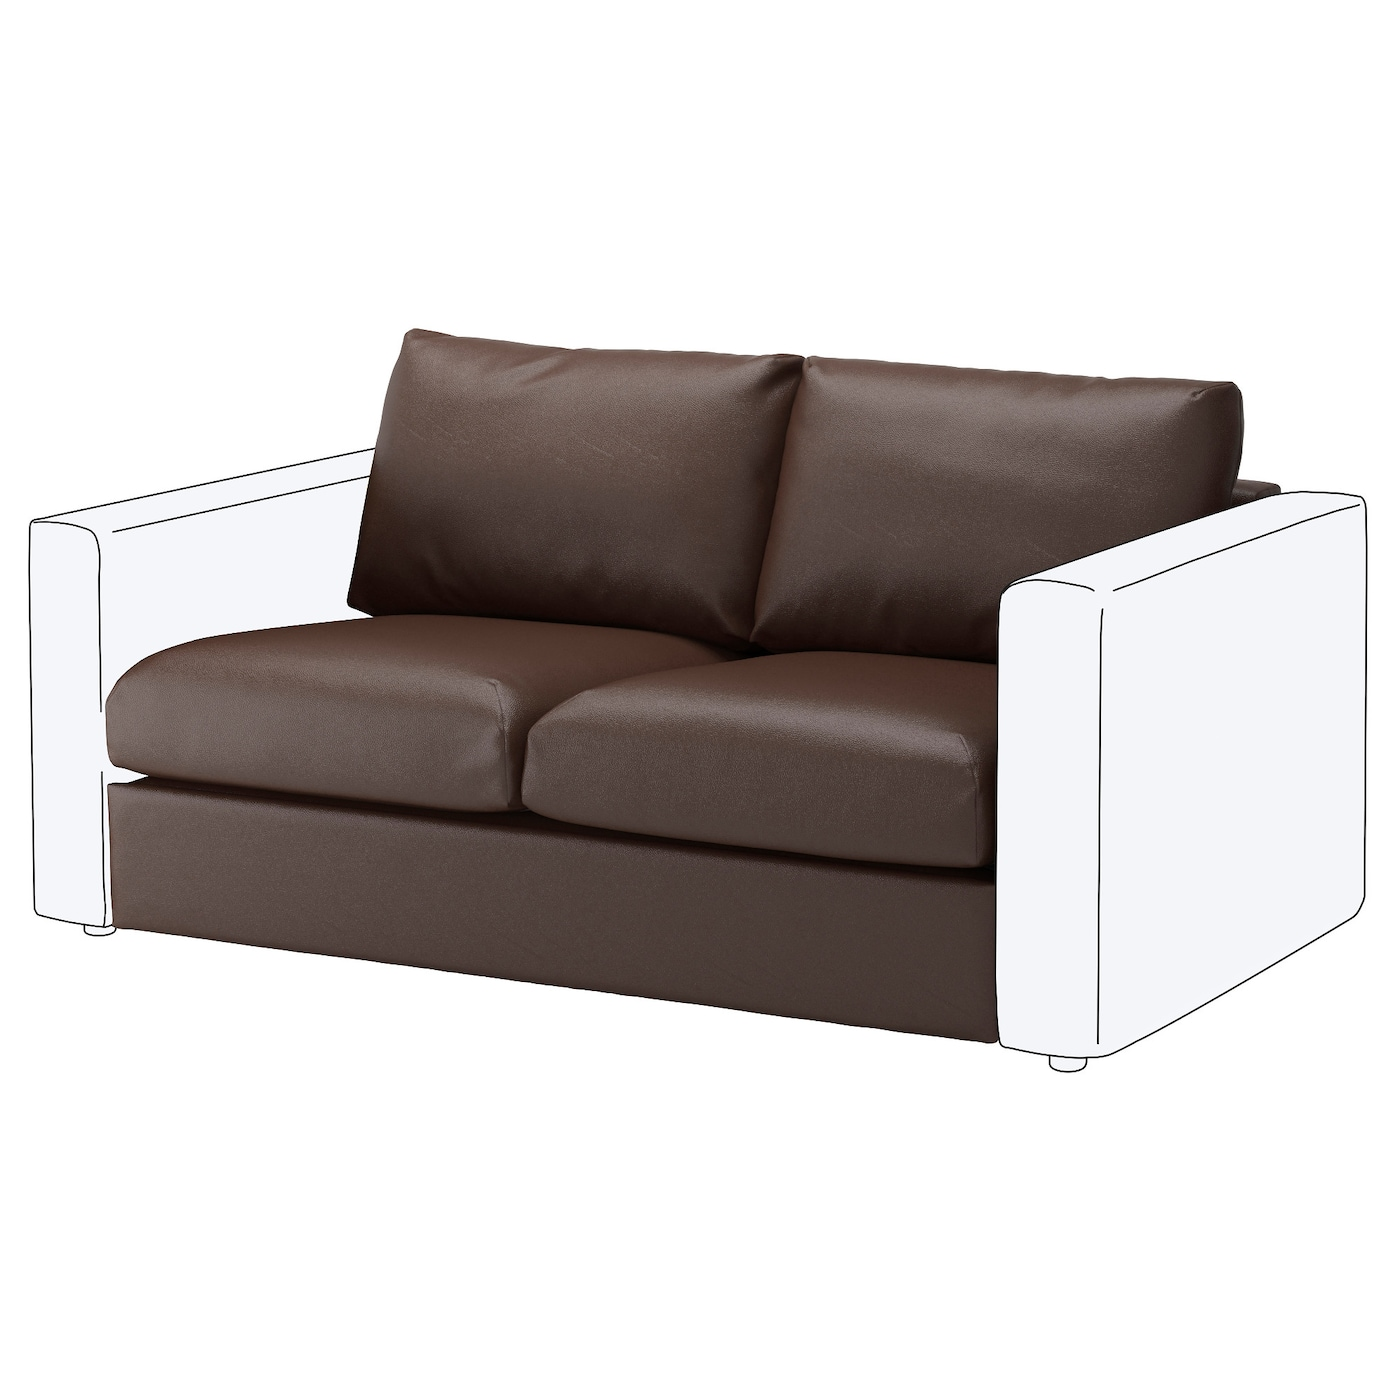 IKEA VIMLE 2-seat section